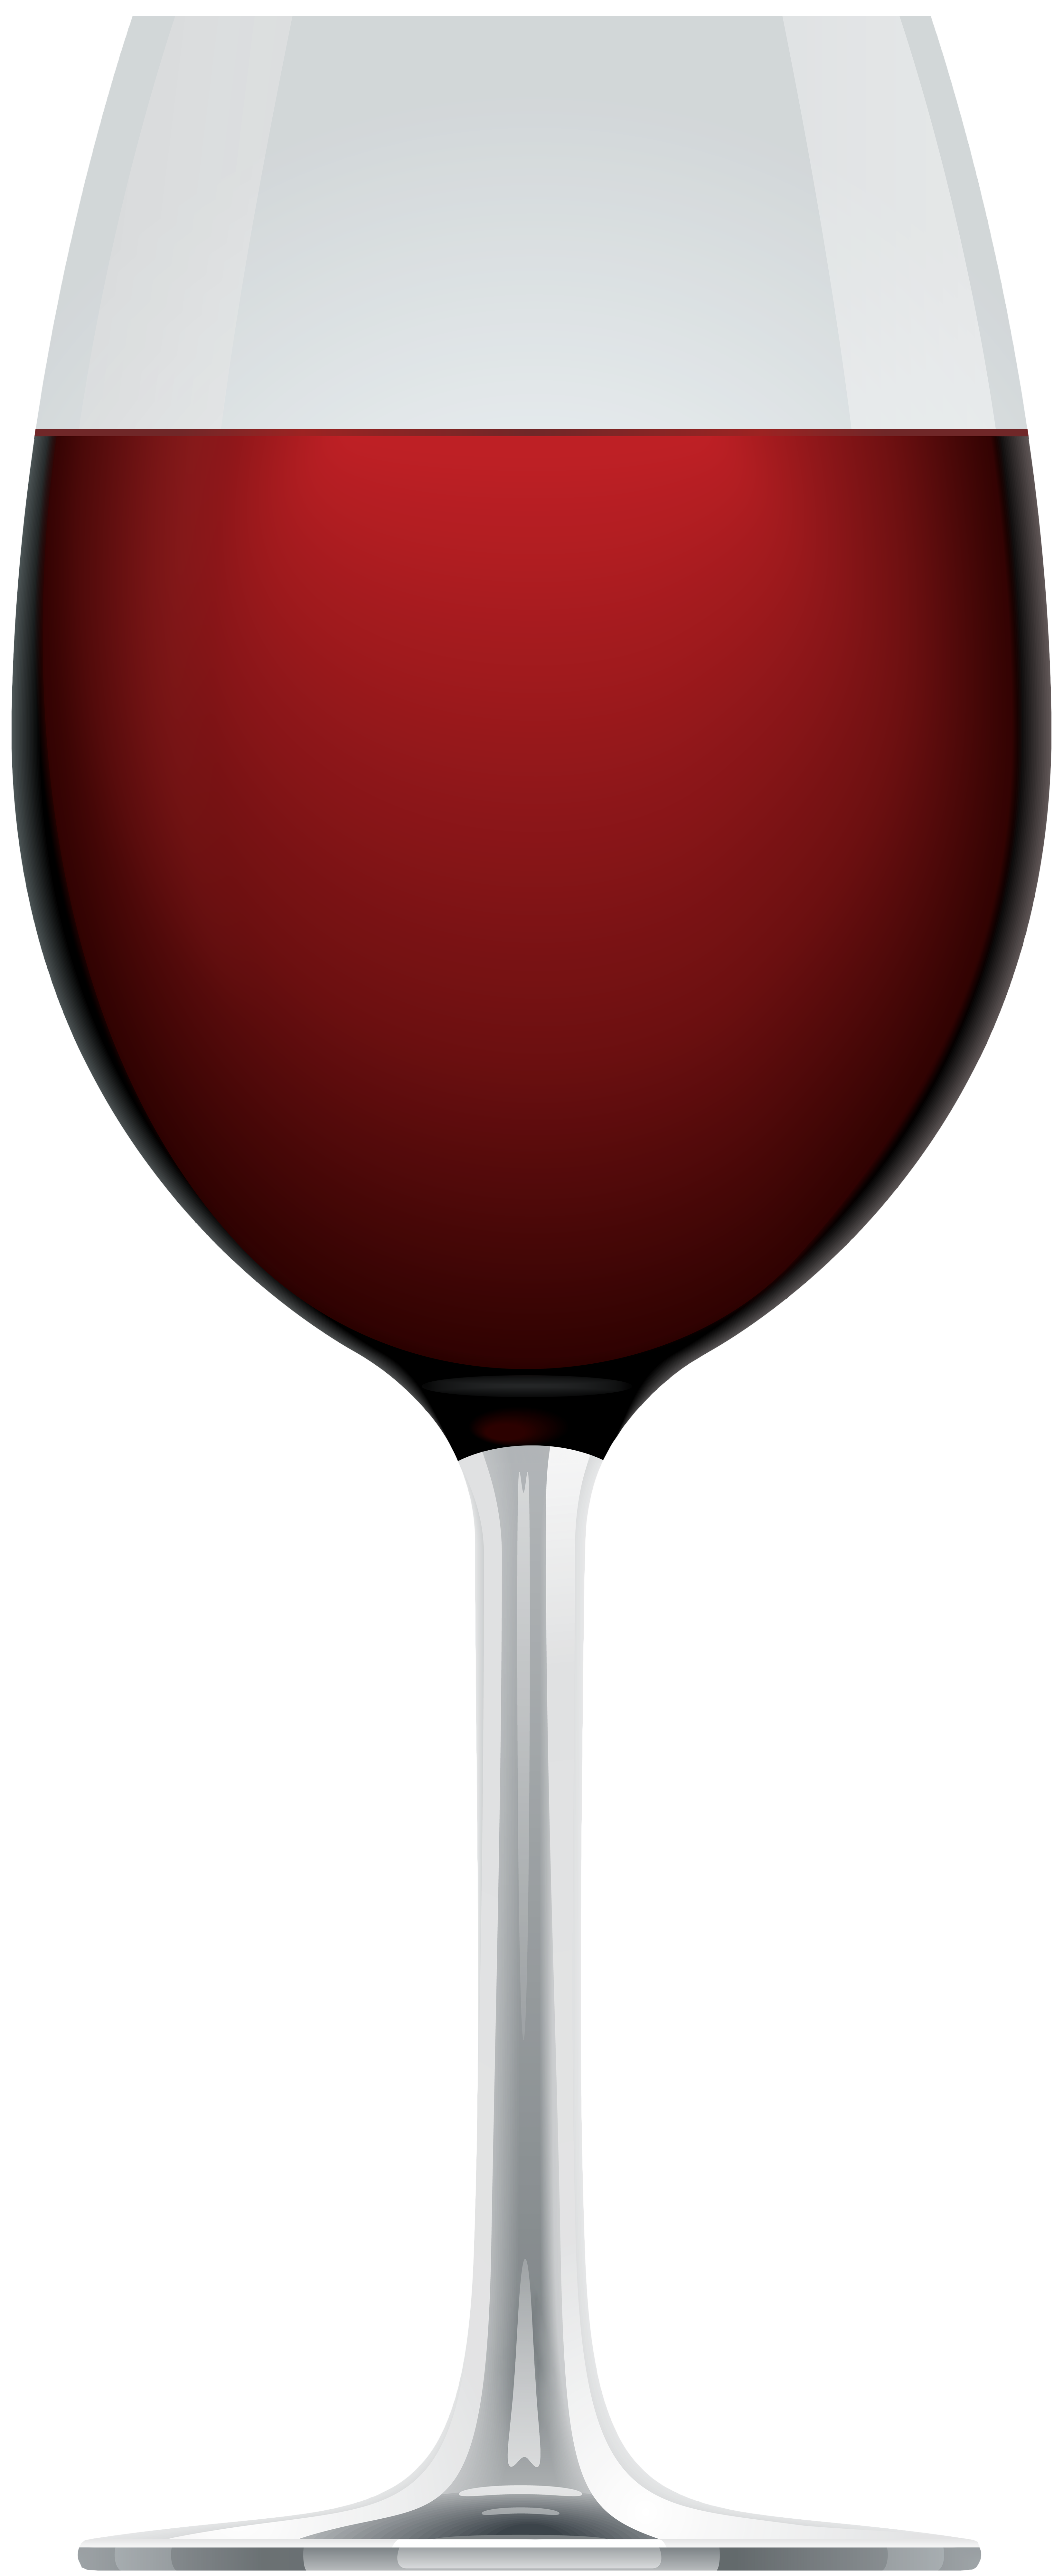 Library of wine glass on table svg transparent download ...